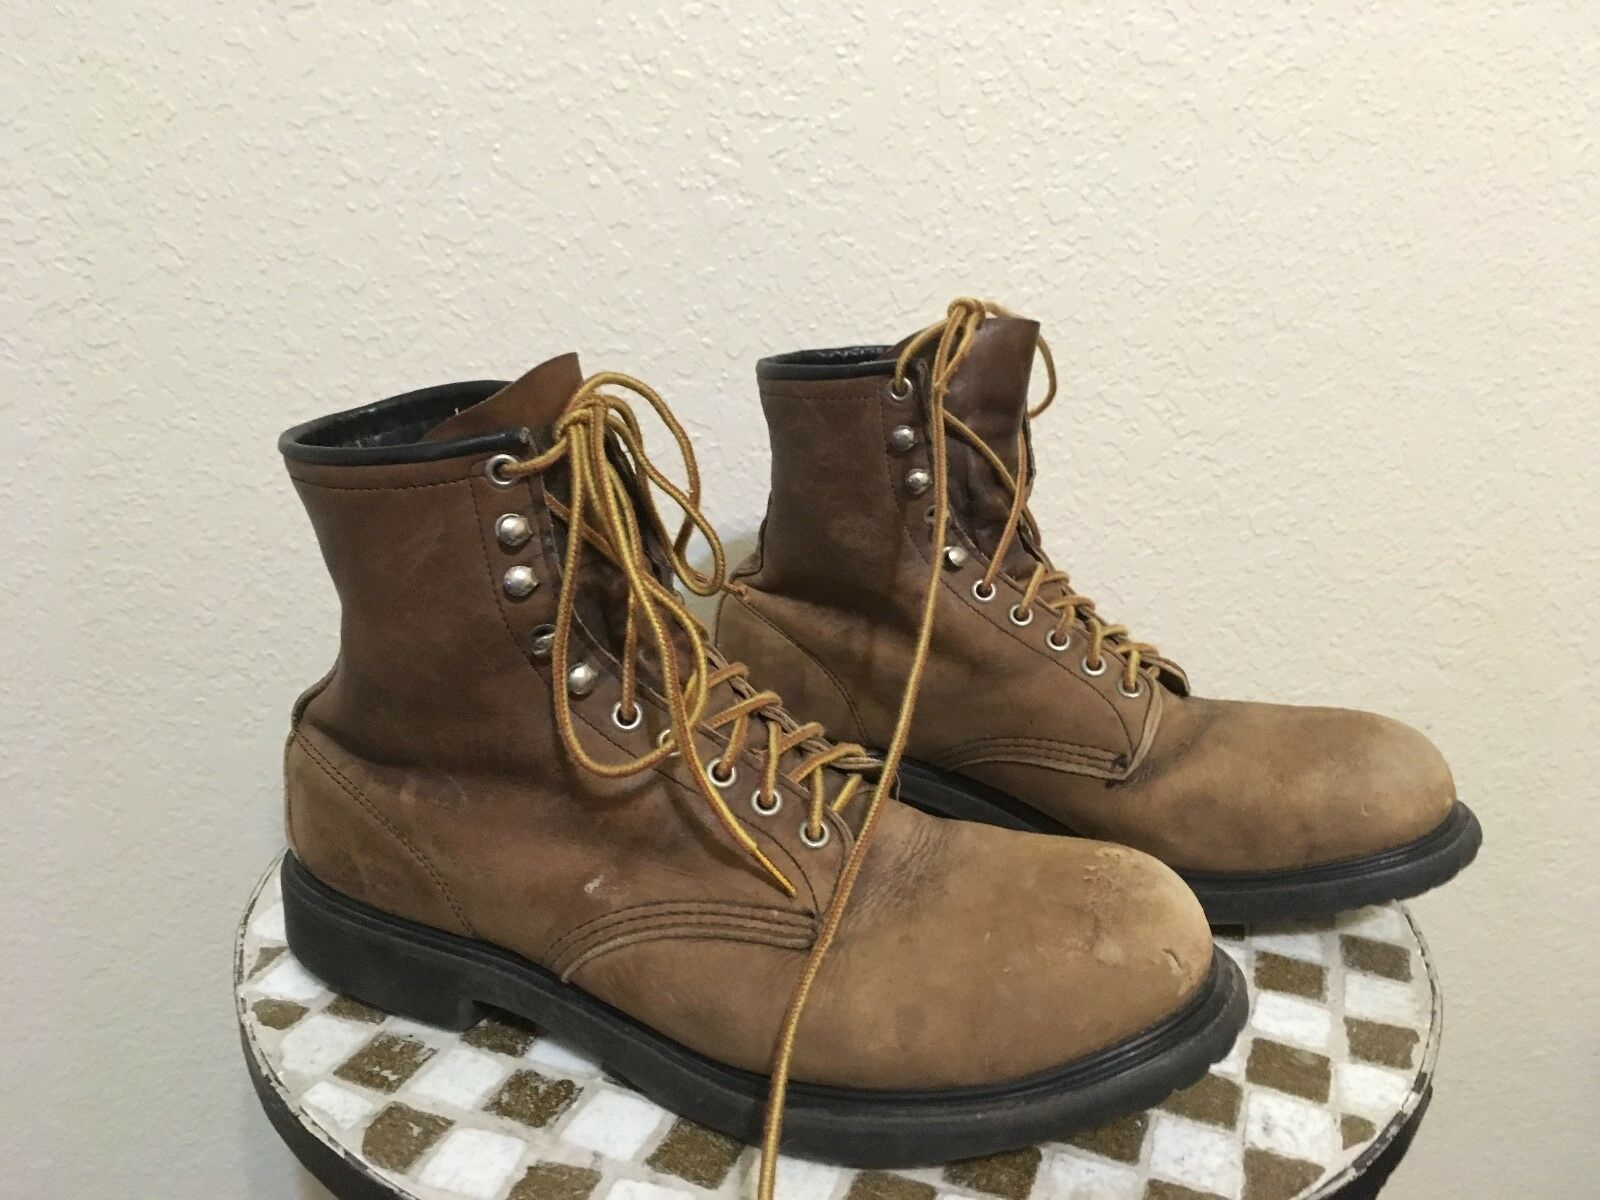 STEEL TOE USA DISTRESSED marrón rojo WING 2333 USA VINTAGE LACE UP botas 11.5 D